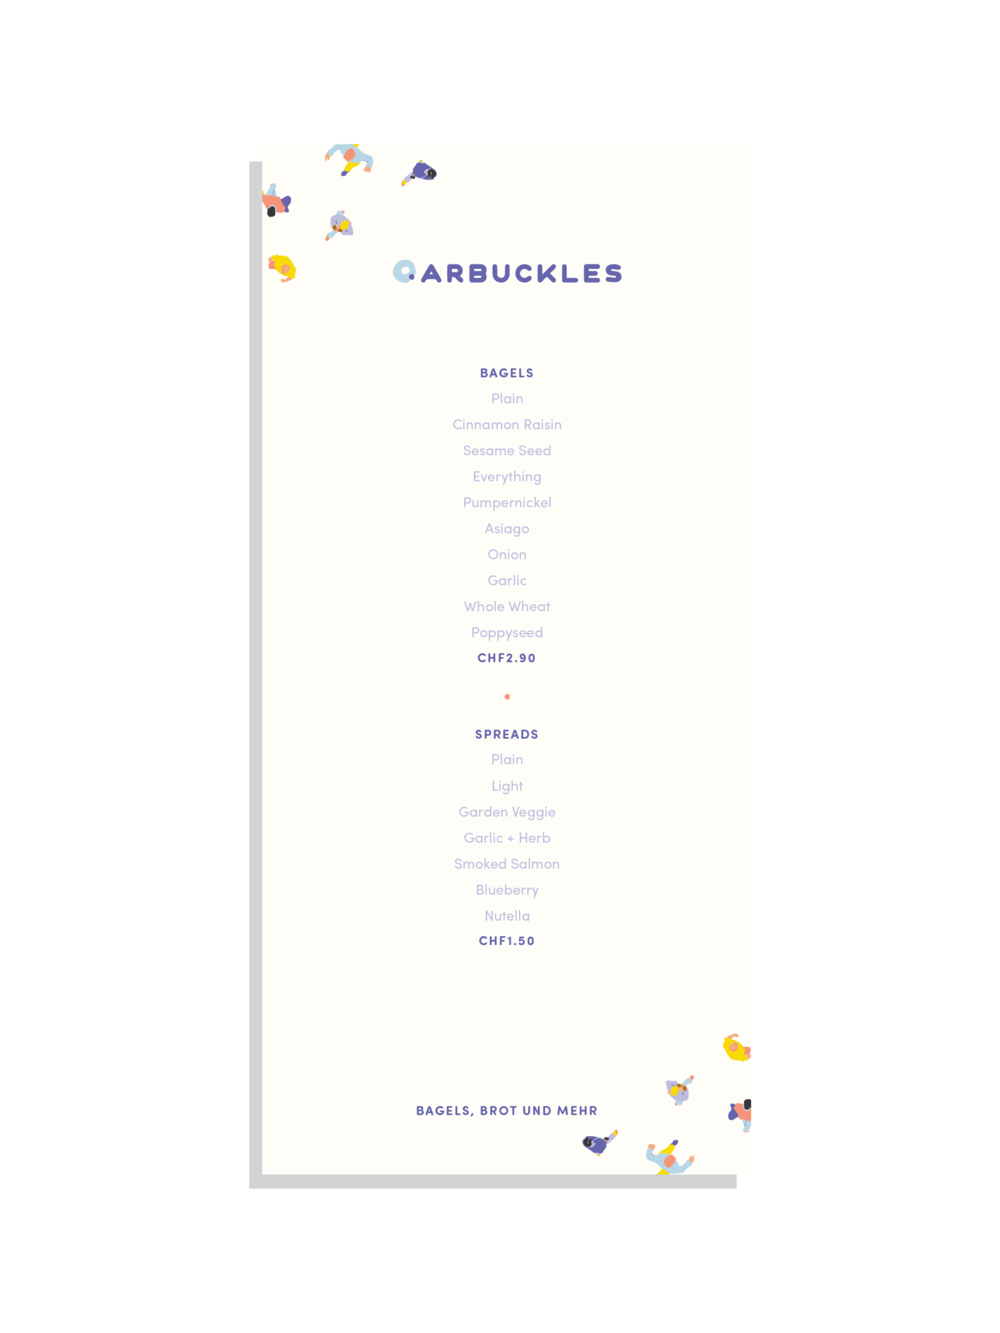 Arbuckles_CaseStudy-14-min.png